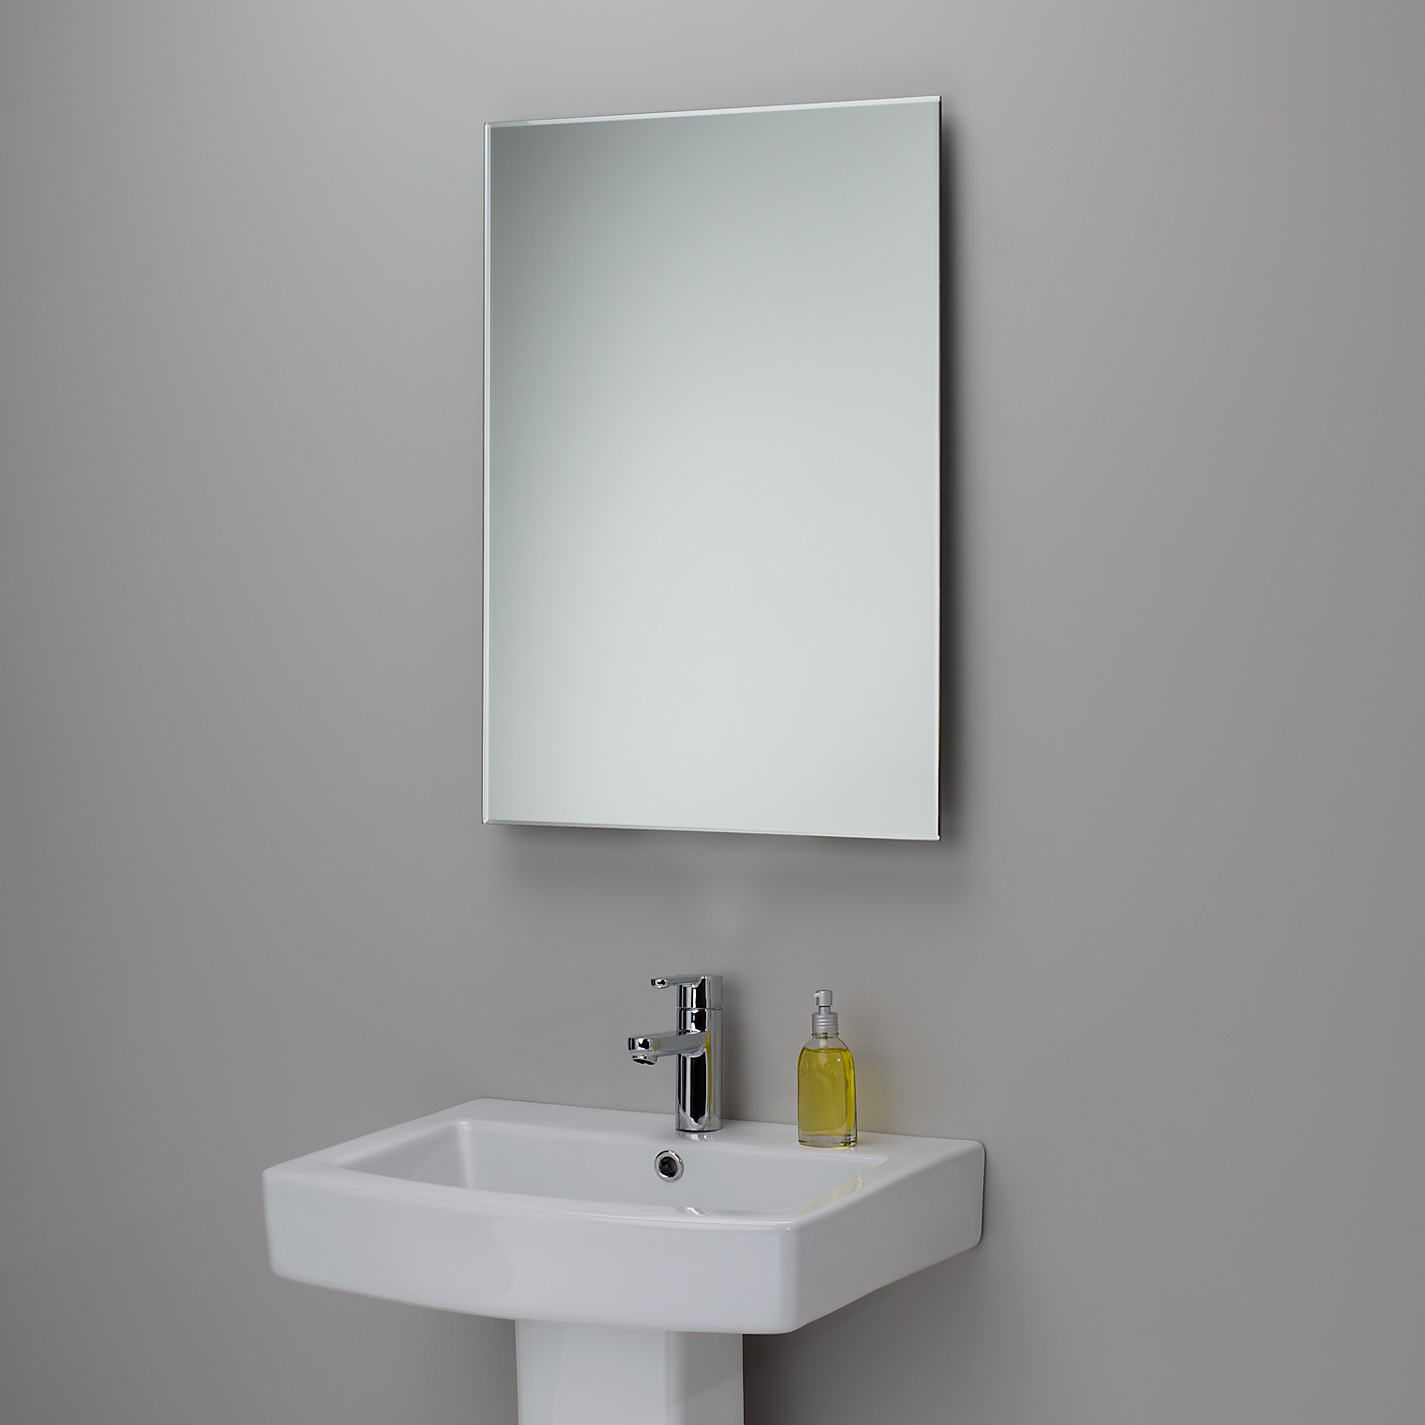 25 Modern Bathroom Mirror Designs Minimalist Bathroom Design Modern Bathroom Mirrors Bathroom Mirror Design